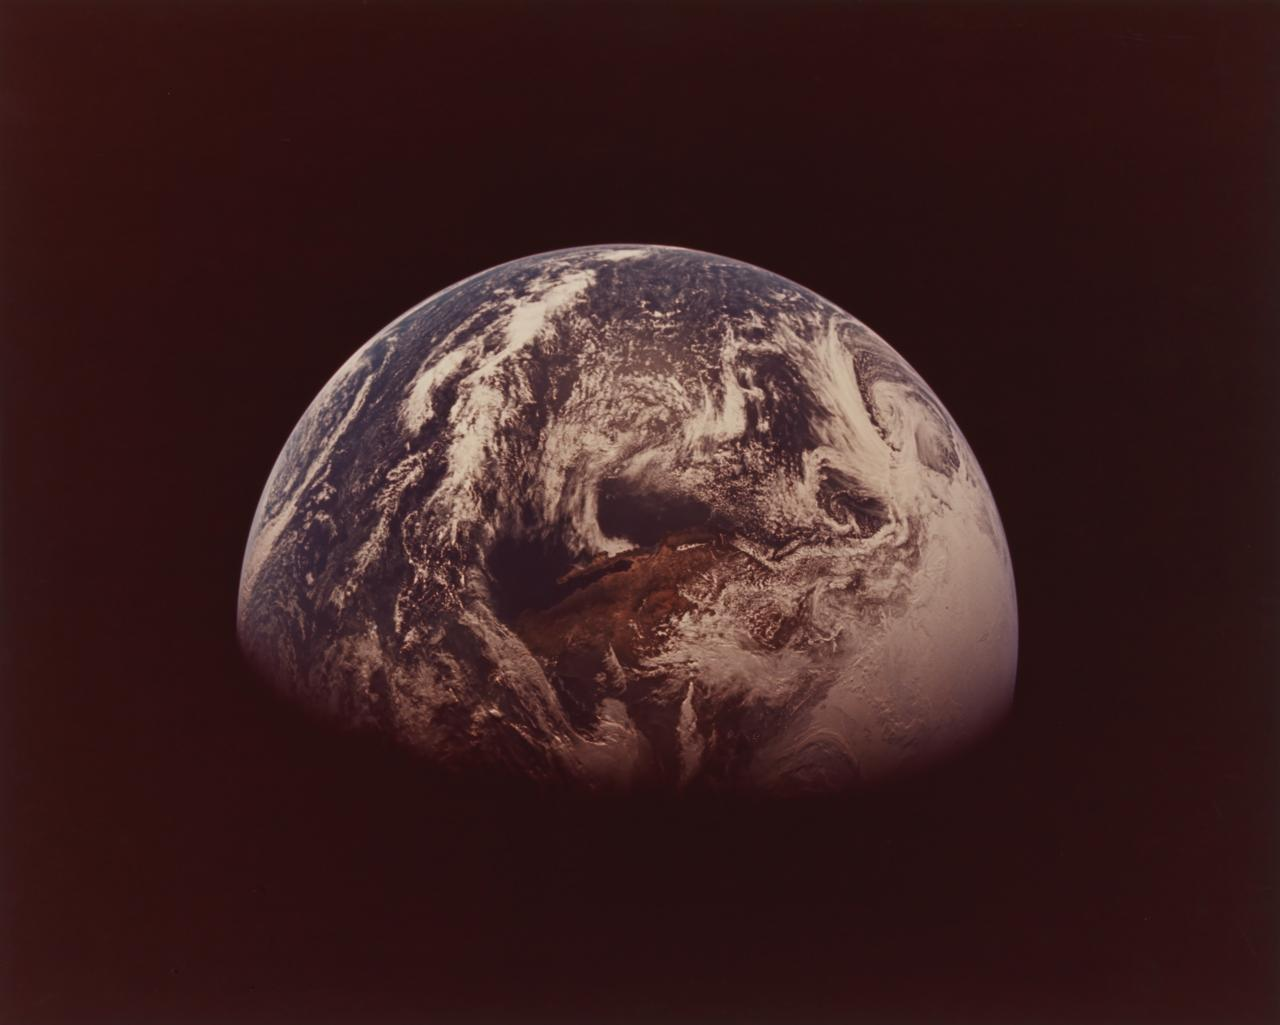 Apollo 13 view of Earth. Southwestern United States and northwestern Mexico. April 1970